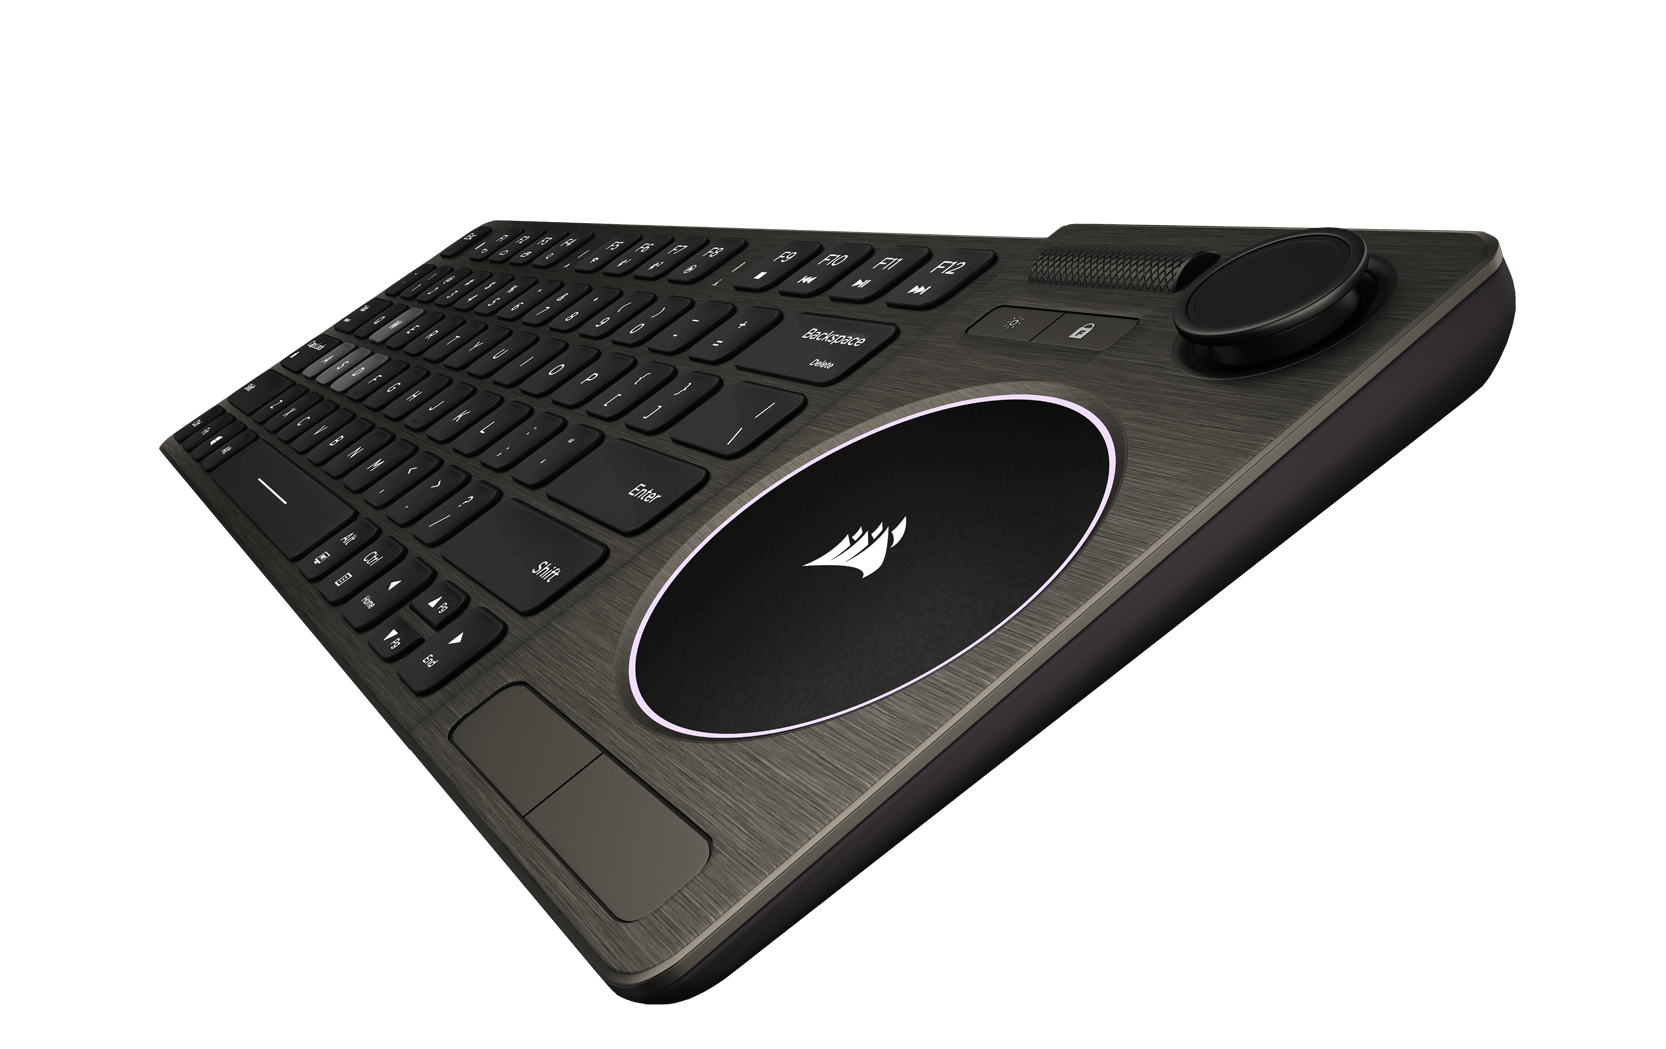 Touchpad de precisão do Corsair K83